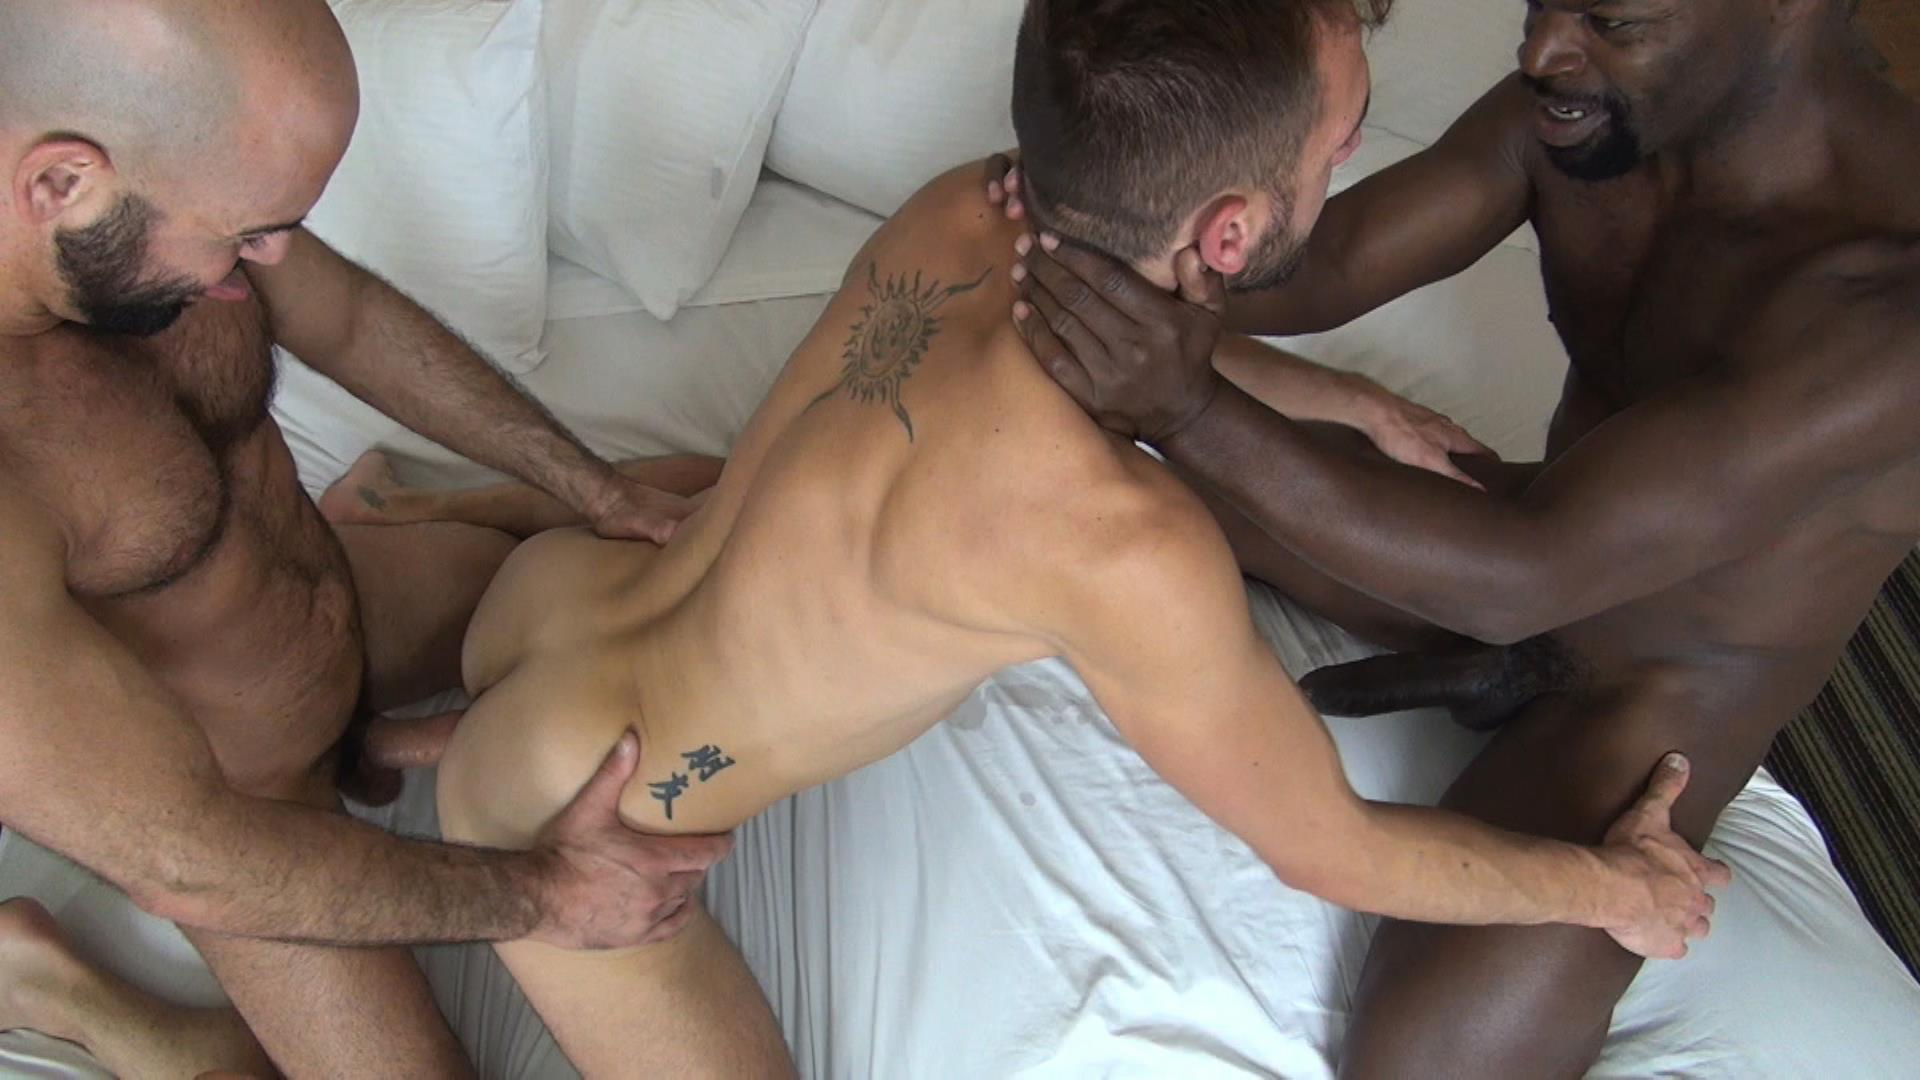 Interracial Beefy Bfs Fucking By The Pool